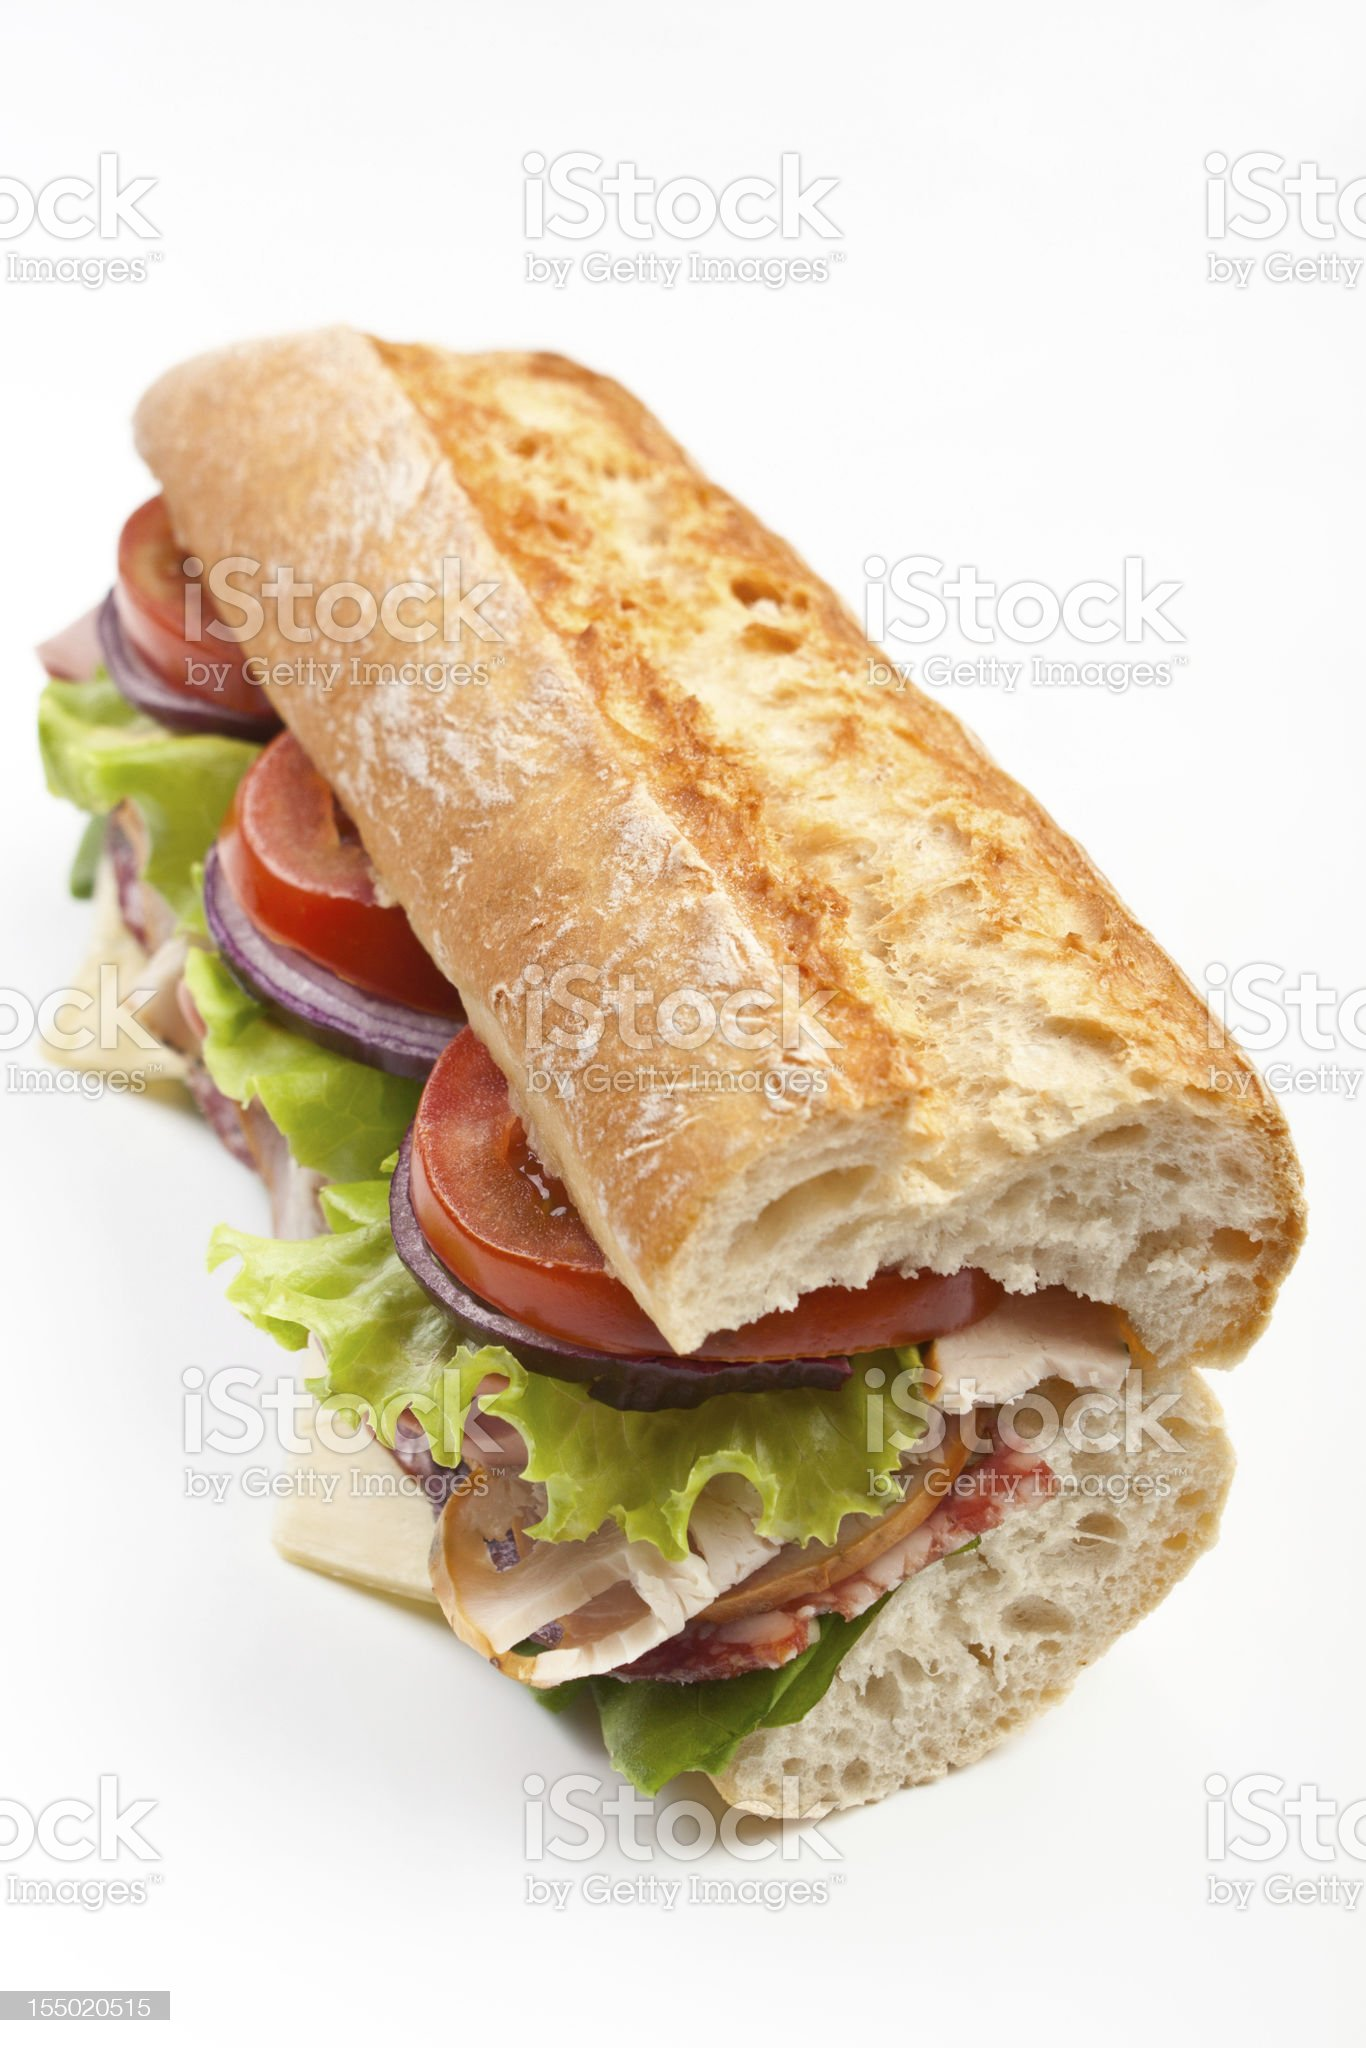 Subway baguette sandwich with three tomatoes and lettuce royalty-free stock photo